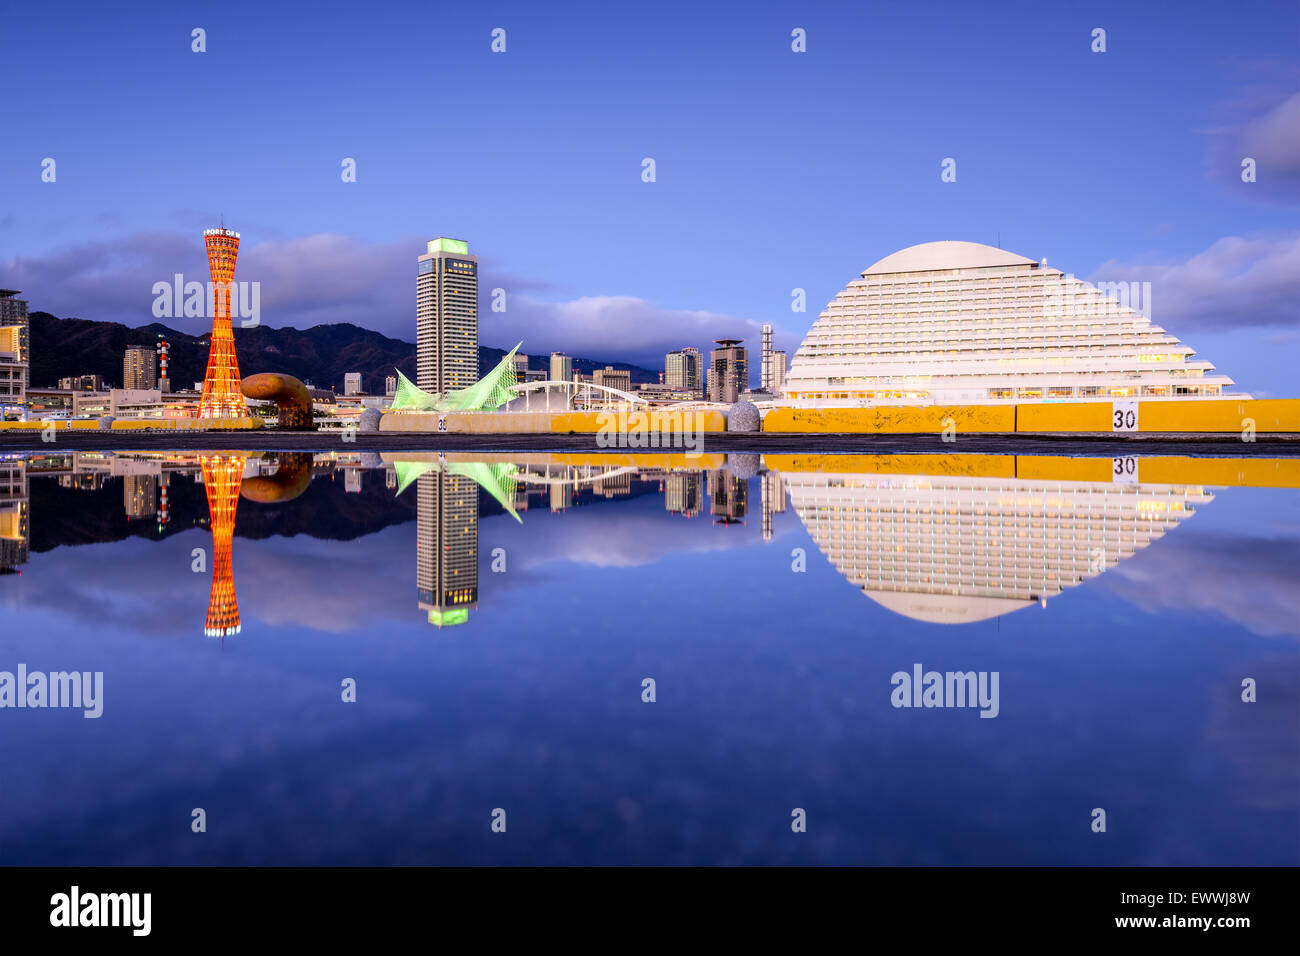 Kobe, Japan skyline with puddle reflections. - Stock Image